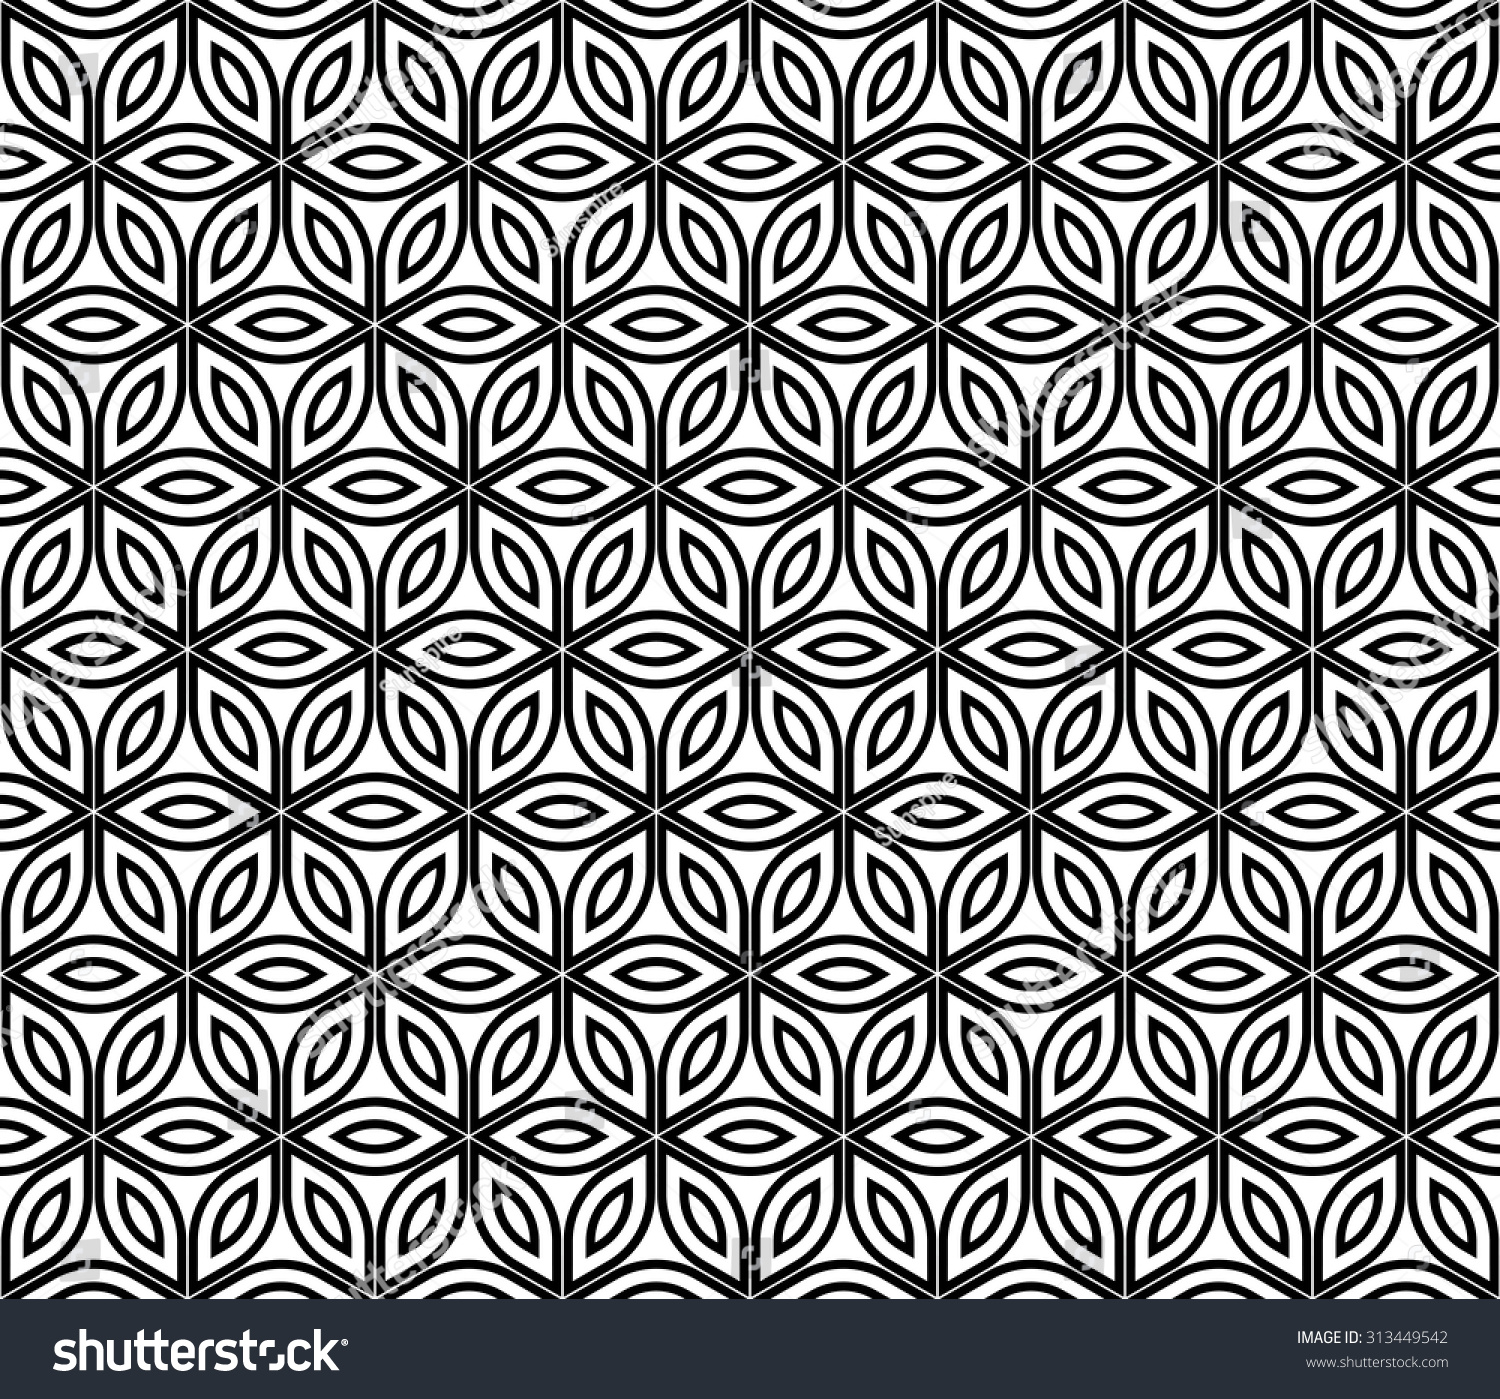 White bed sheet texture seamless - Vector Modern Seamless Pattern Sacred Geometry Black And White Textile Print Stylish Background